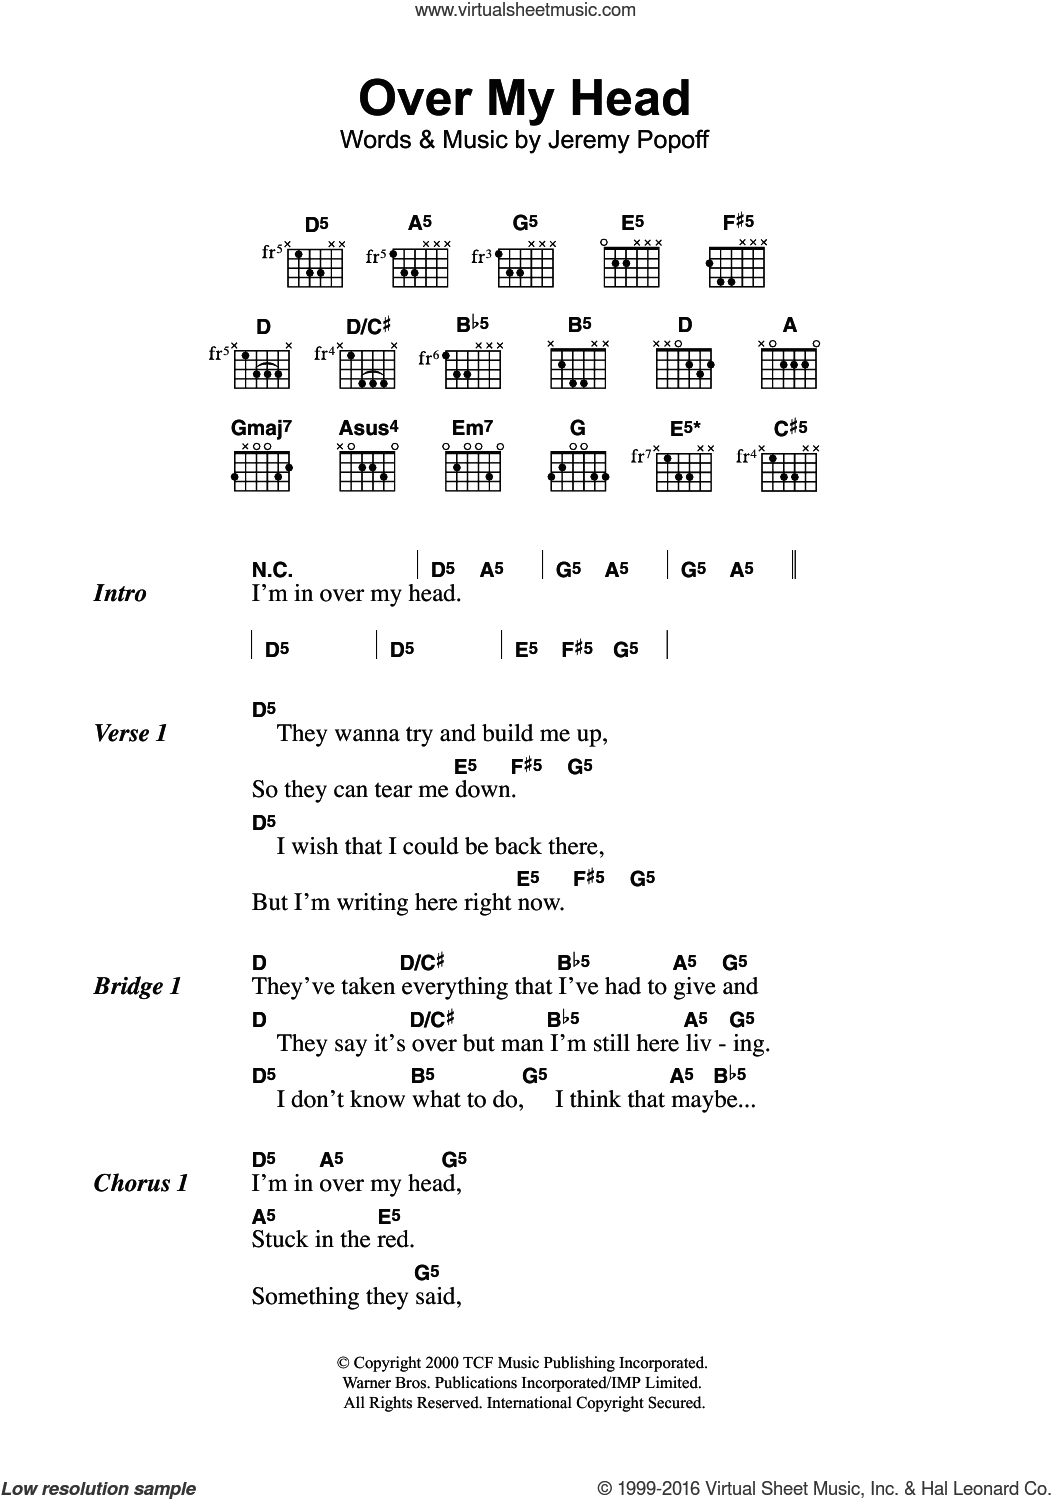 Over My Head sheet music for guitar (chords) by Lit and Jeremy Popoff, intermediate skill level